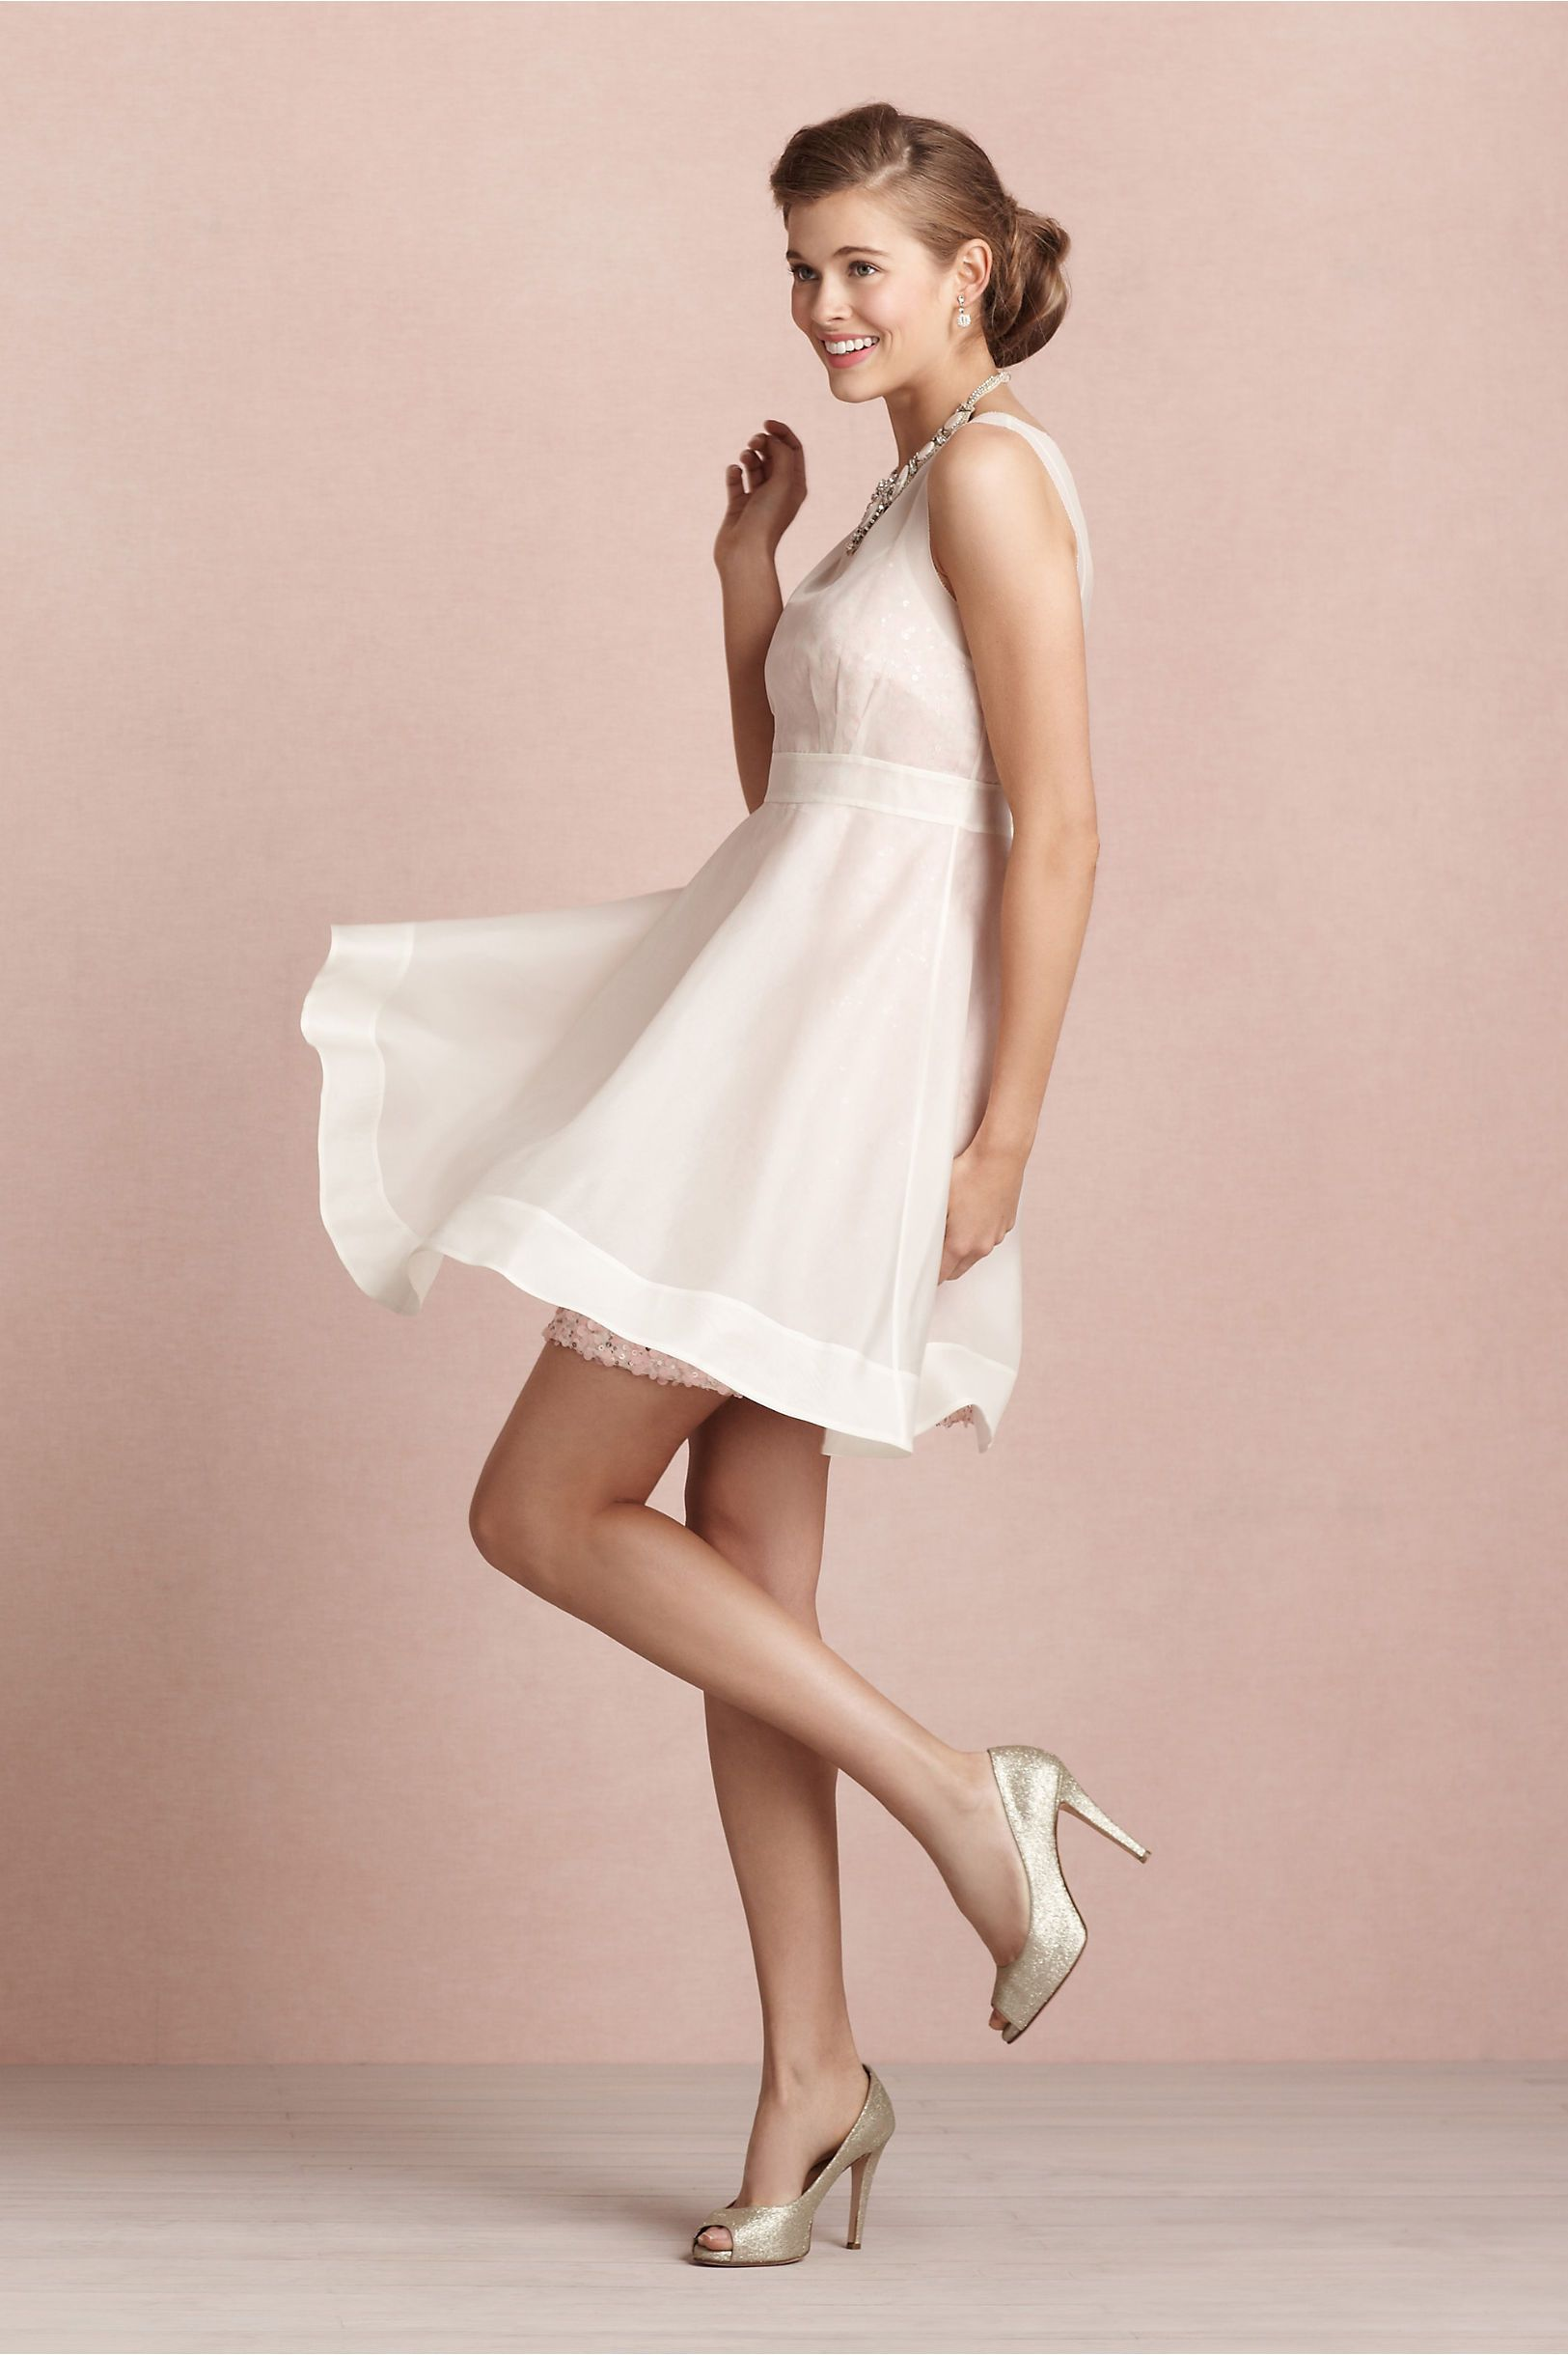 Sequin Stash Dress in Bride Reception Dresses at BHLDN - A sequin ...